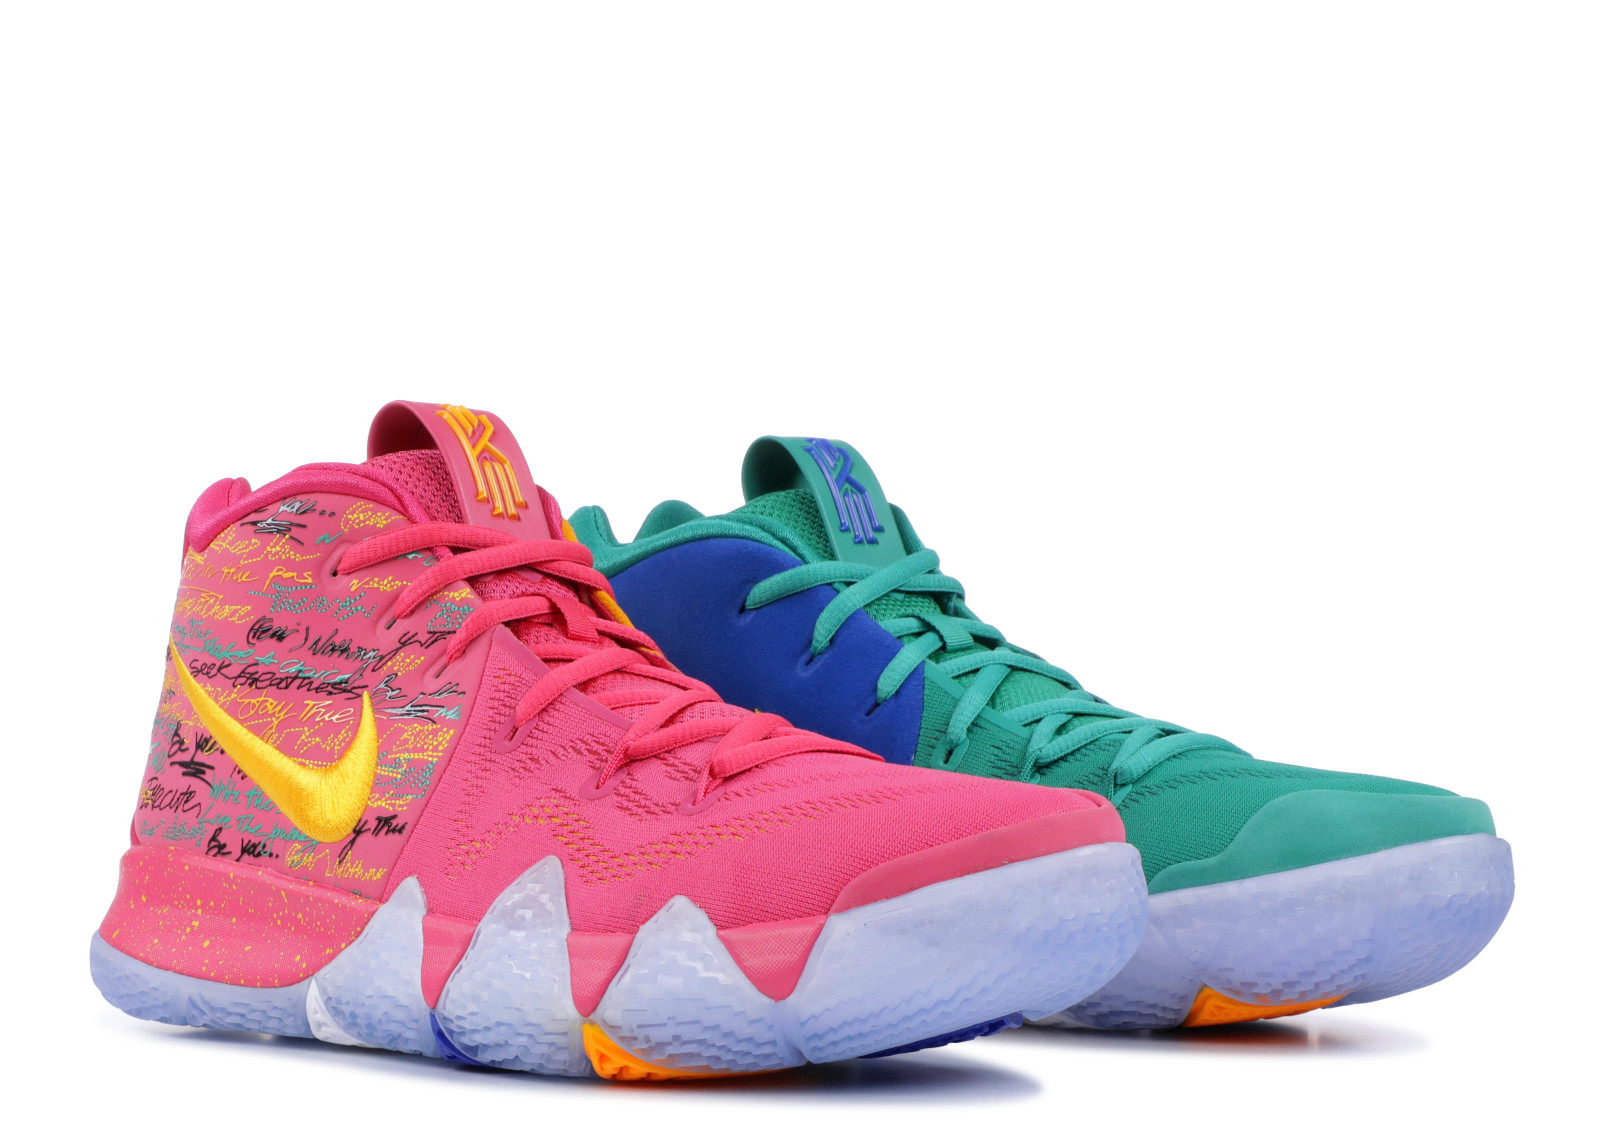 "giay theo thao dat nhat q3.2018 - Nike Kyrie 4 ""NBA 2K18"" - elle man"